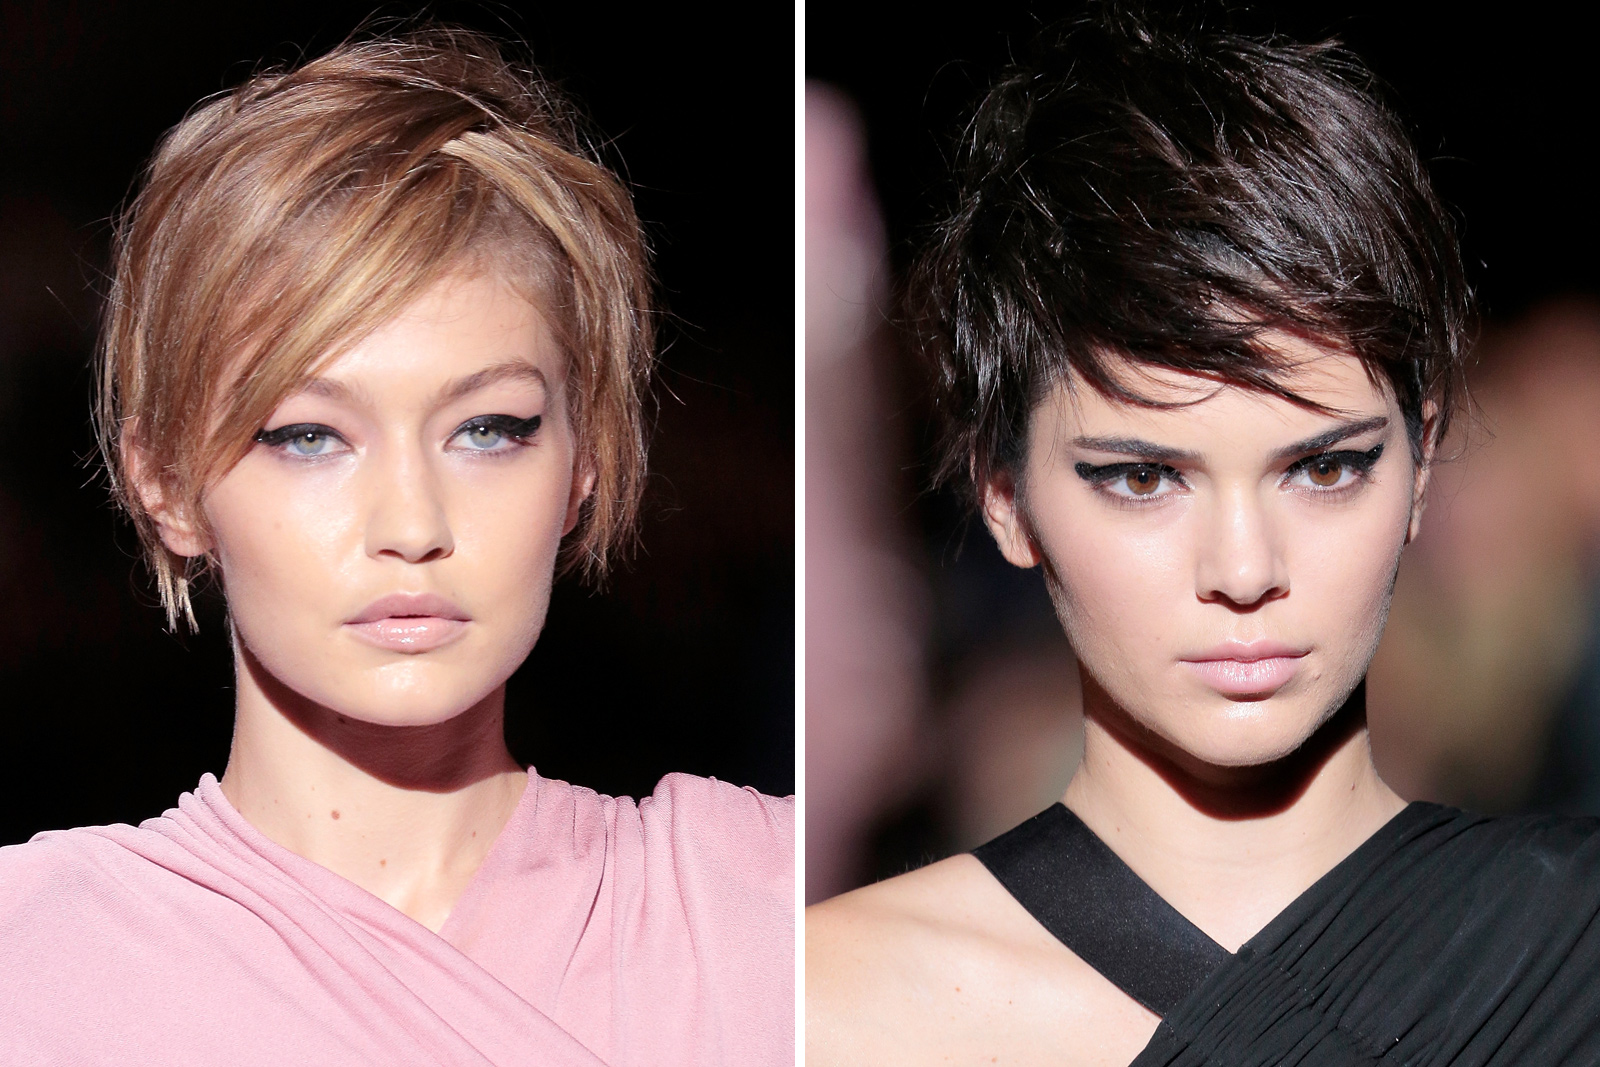 Kendall Jenner and Gigi Hadid Test Drive the Pixie at Tom Ford's NYFW Show